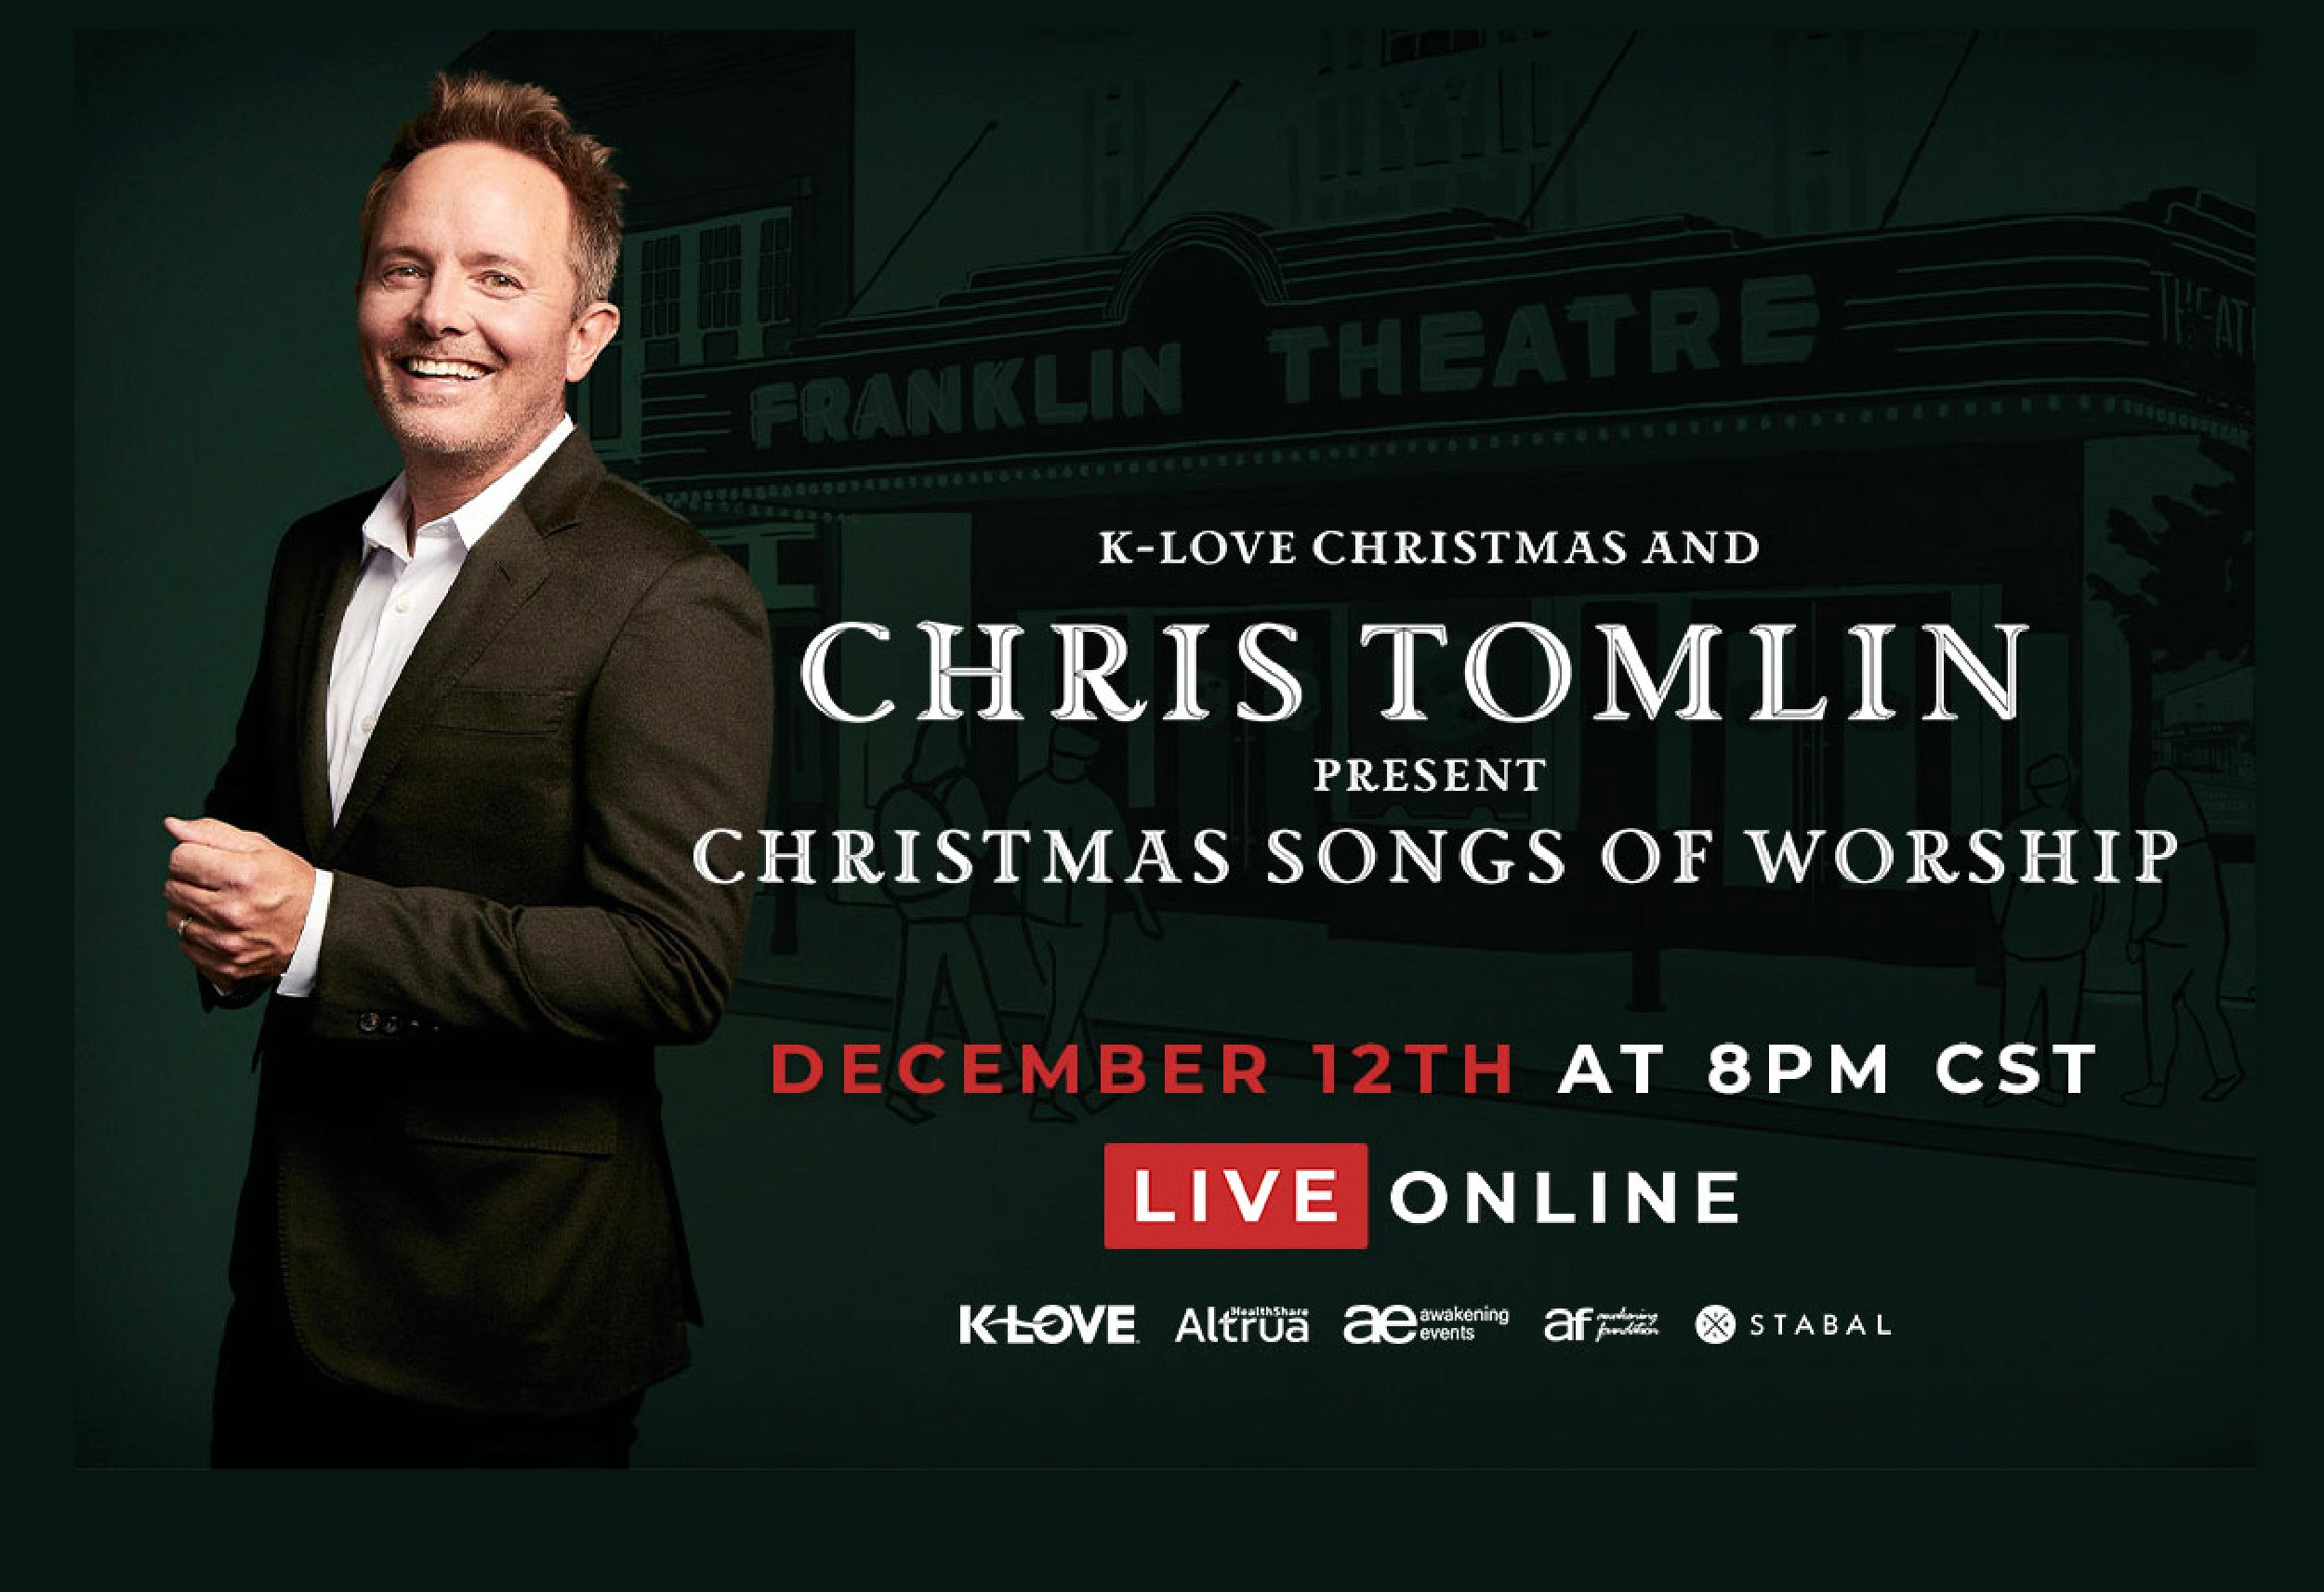 Who Is The Minster At The 2021 Klove Christmas Tour K Love Christmas Chris Tomlin Present Christmas Songs Of Worship News Chris Tomlin